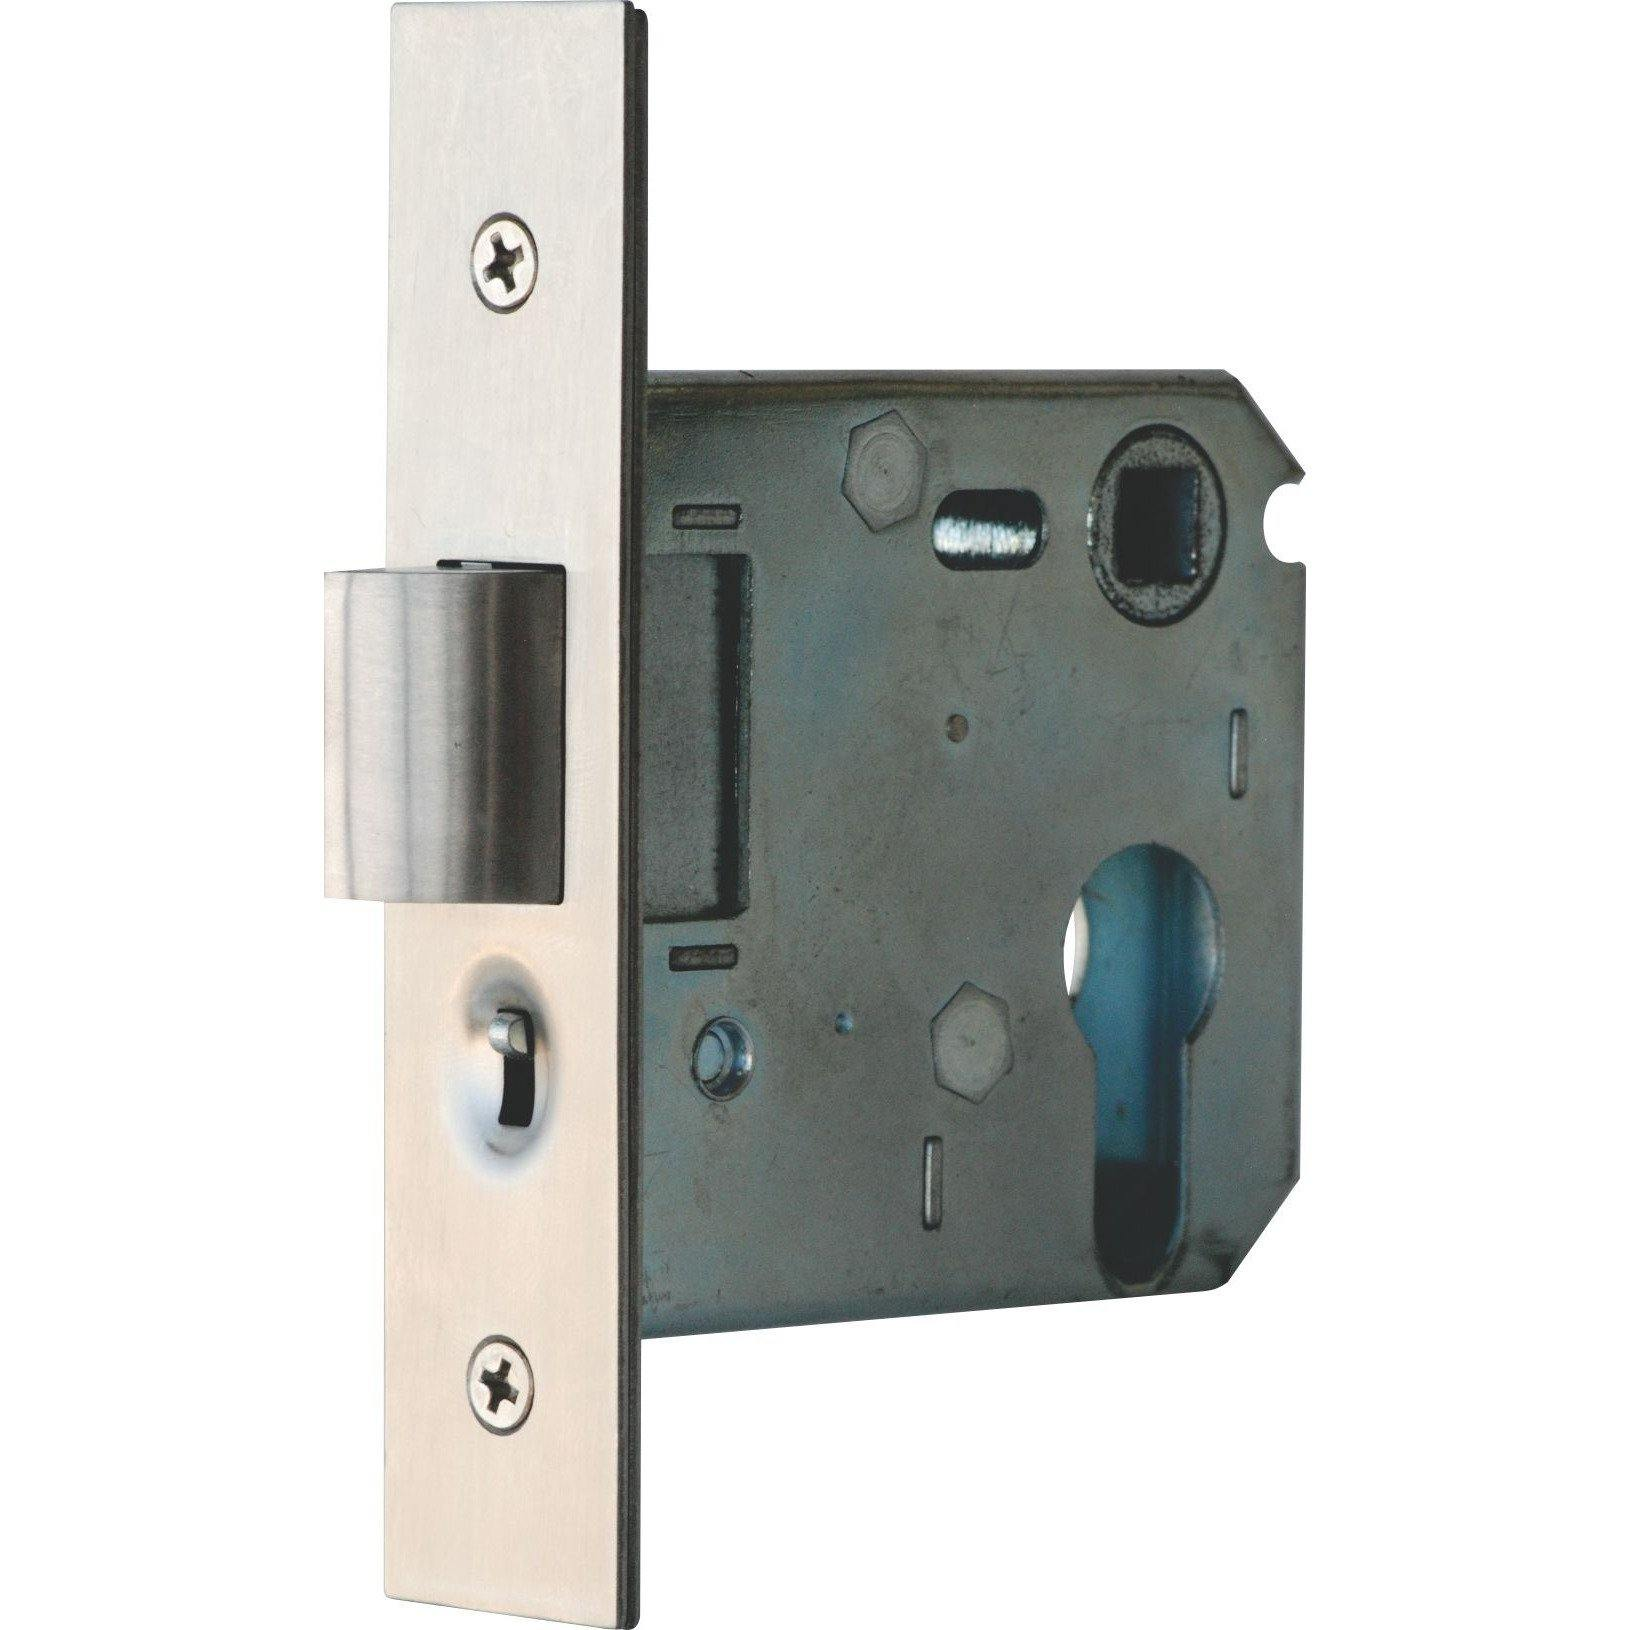 Gate latch lock with hold open (Lock Body Only)